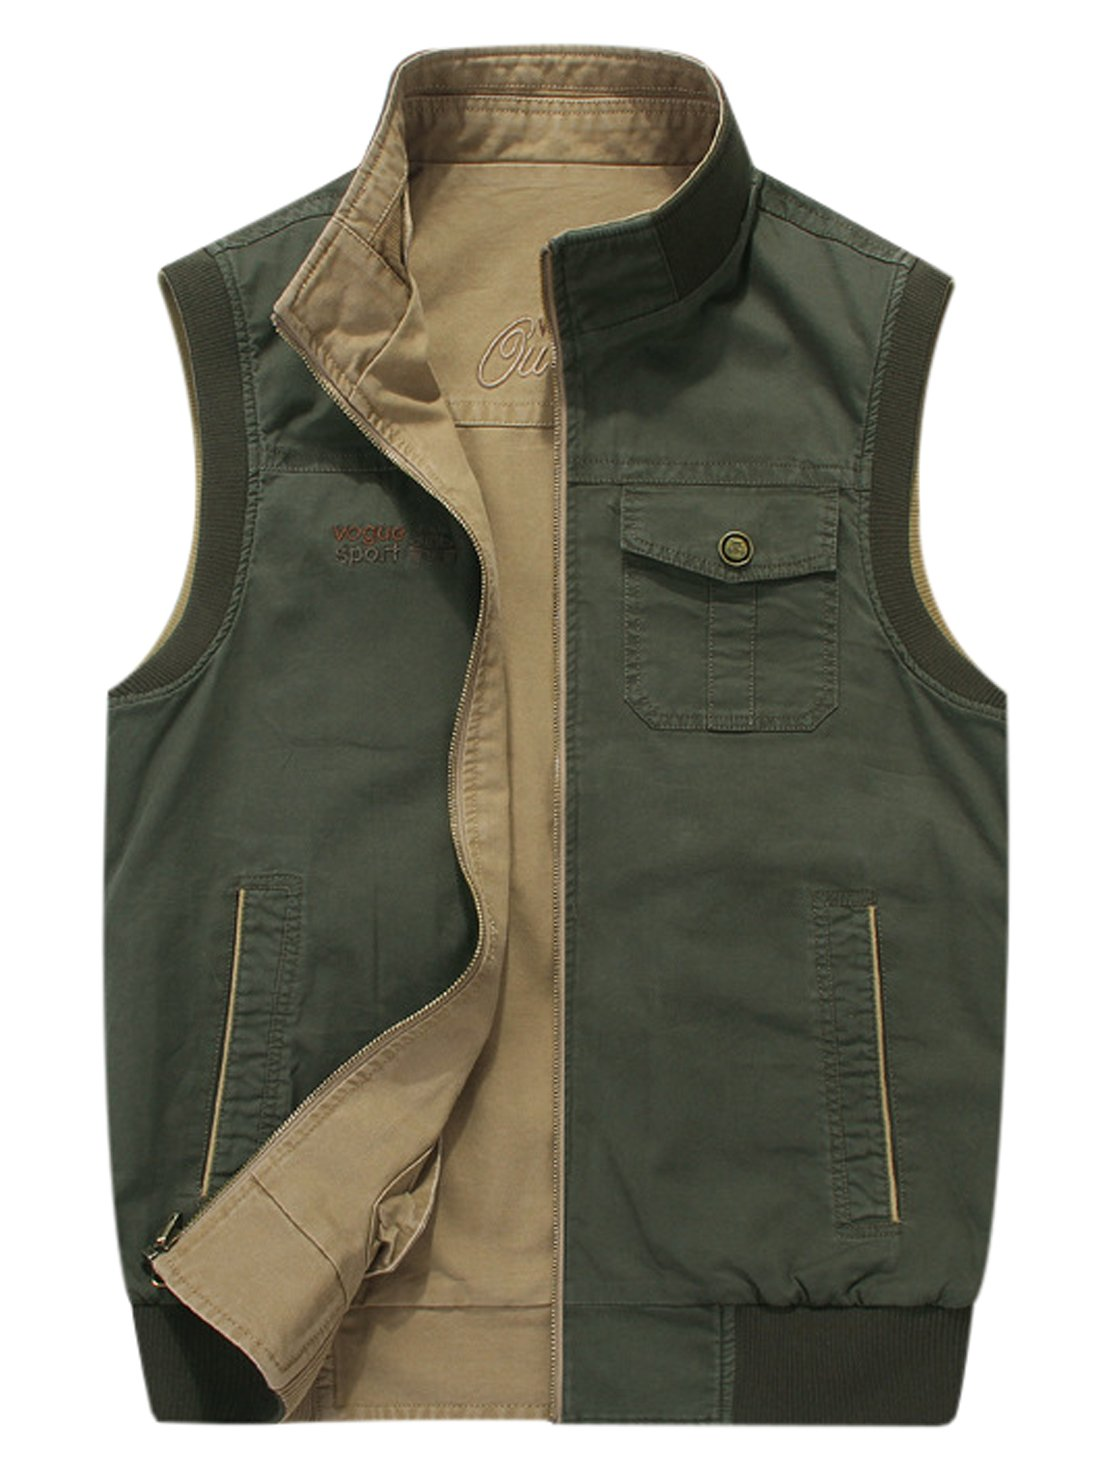 Gihuo Men's Reversible Cotton Leisure Outdoor Pockets Fish Photo Journalist Vest (L, Khaki) by Gihuo (Image #3)